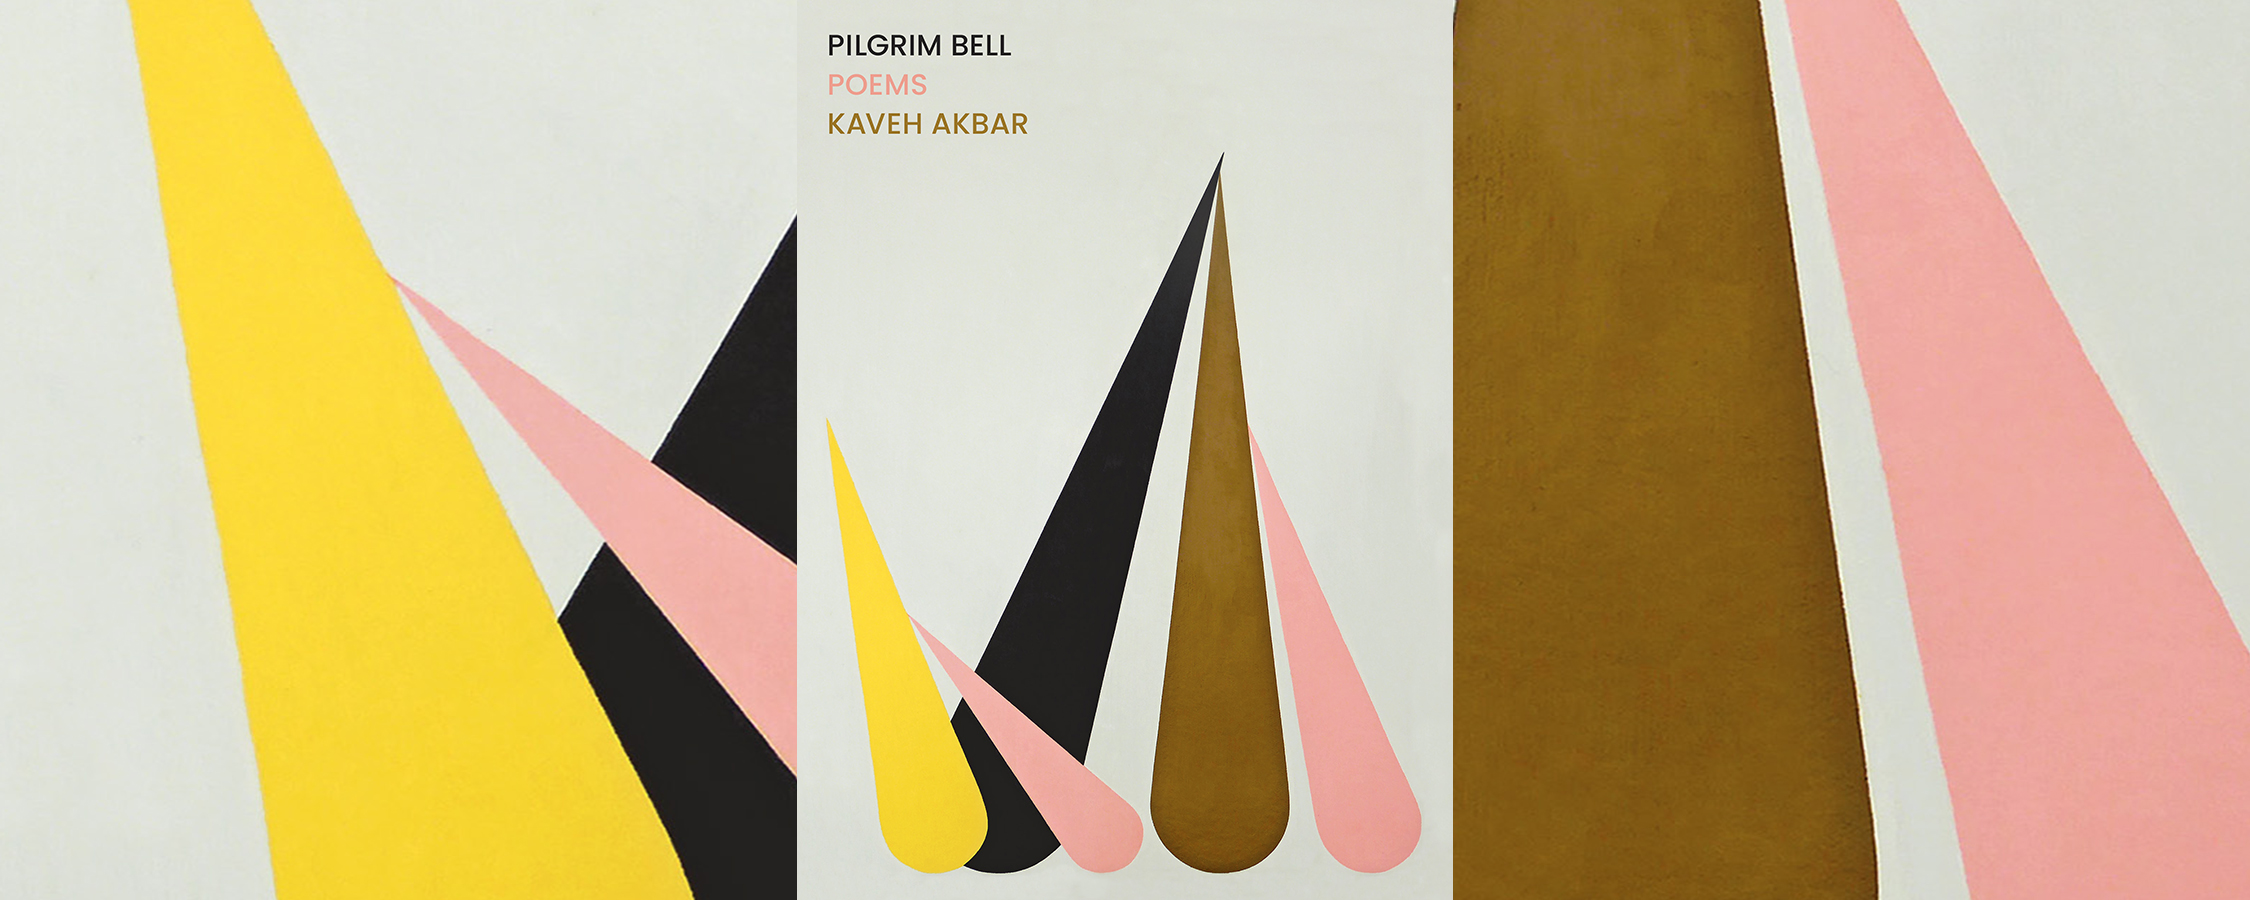 Three Poems from Pilgrim Bell by Kaveh Akbar